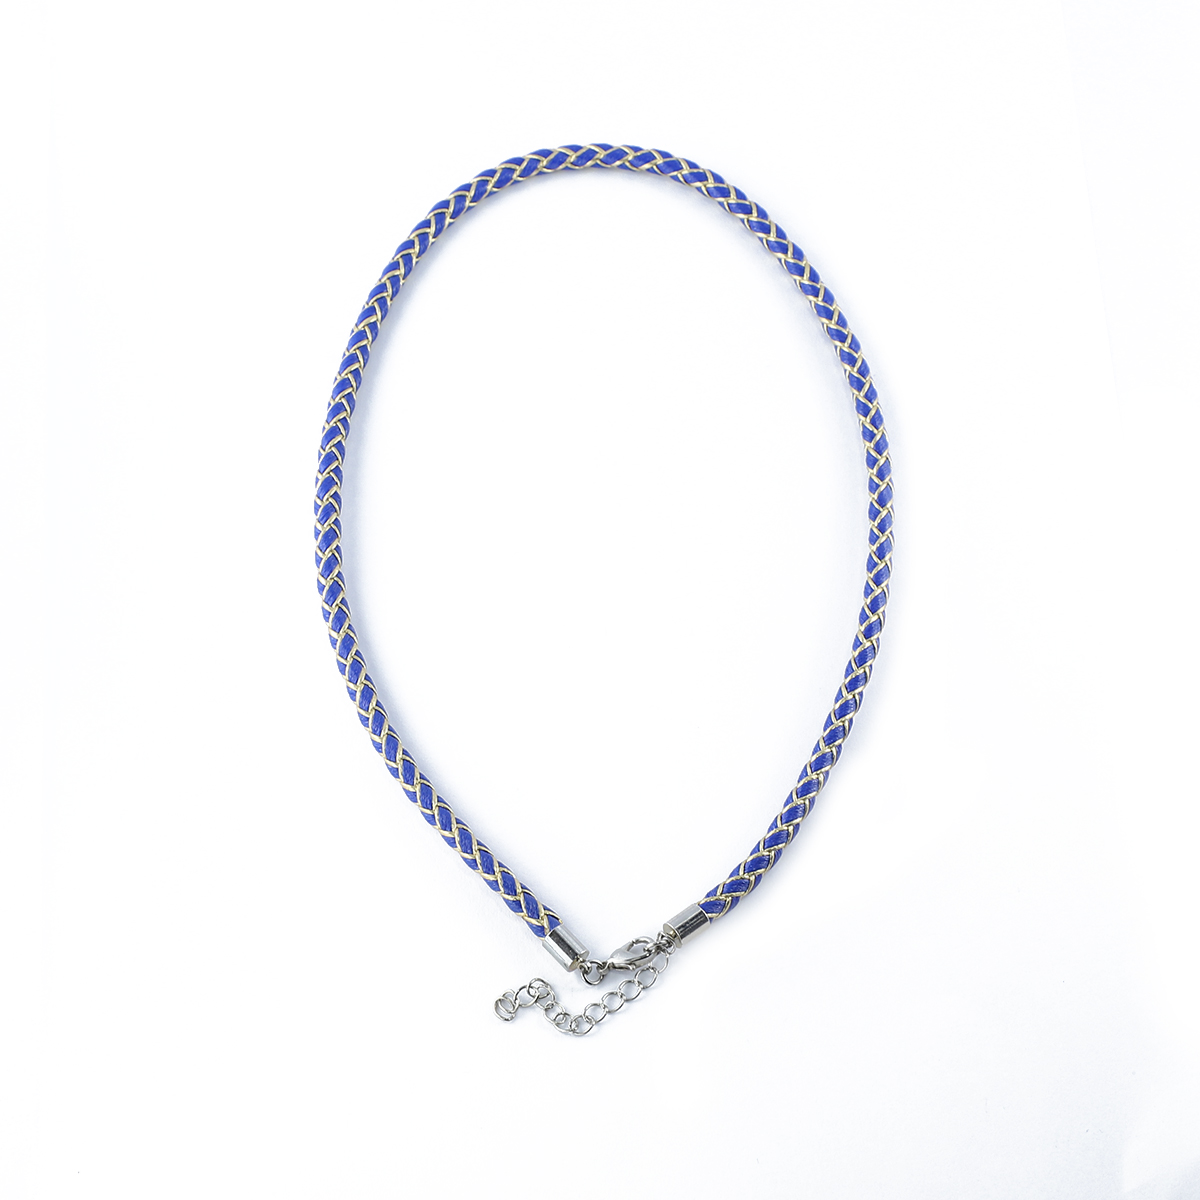 N00993Lea Leather Cord Blue